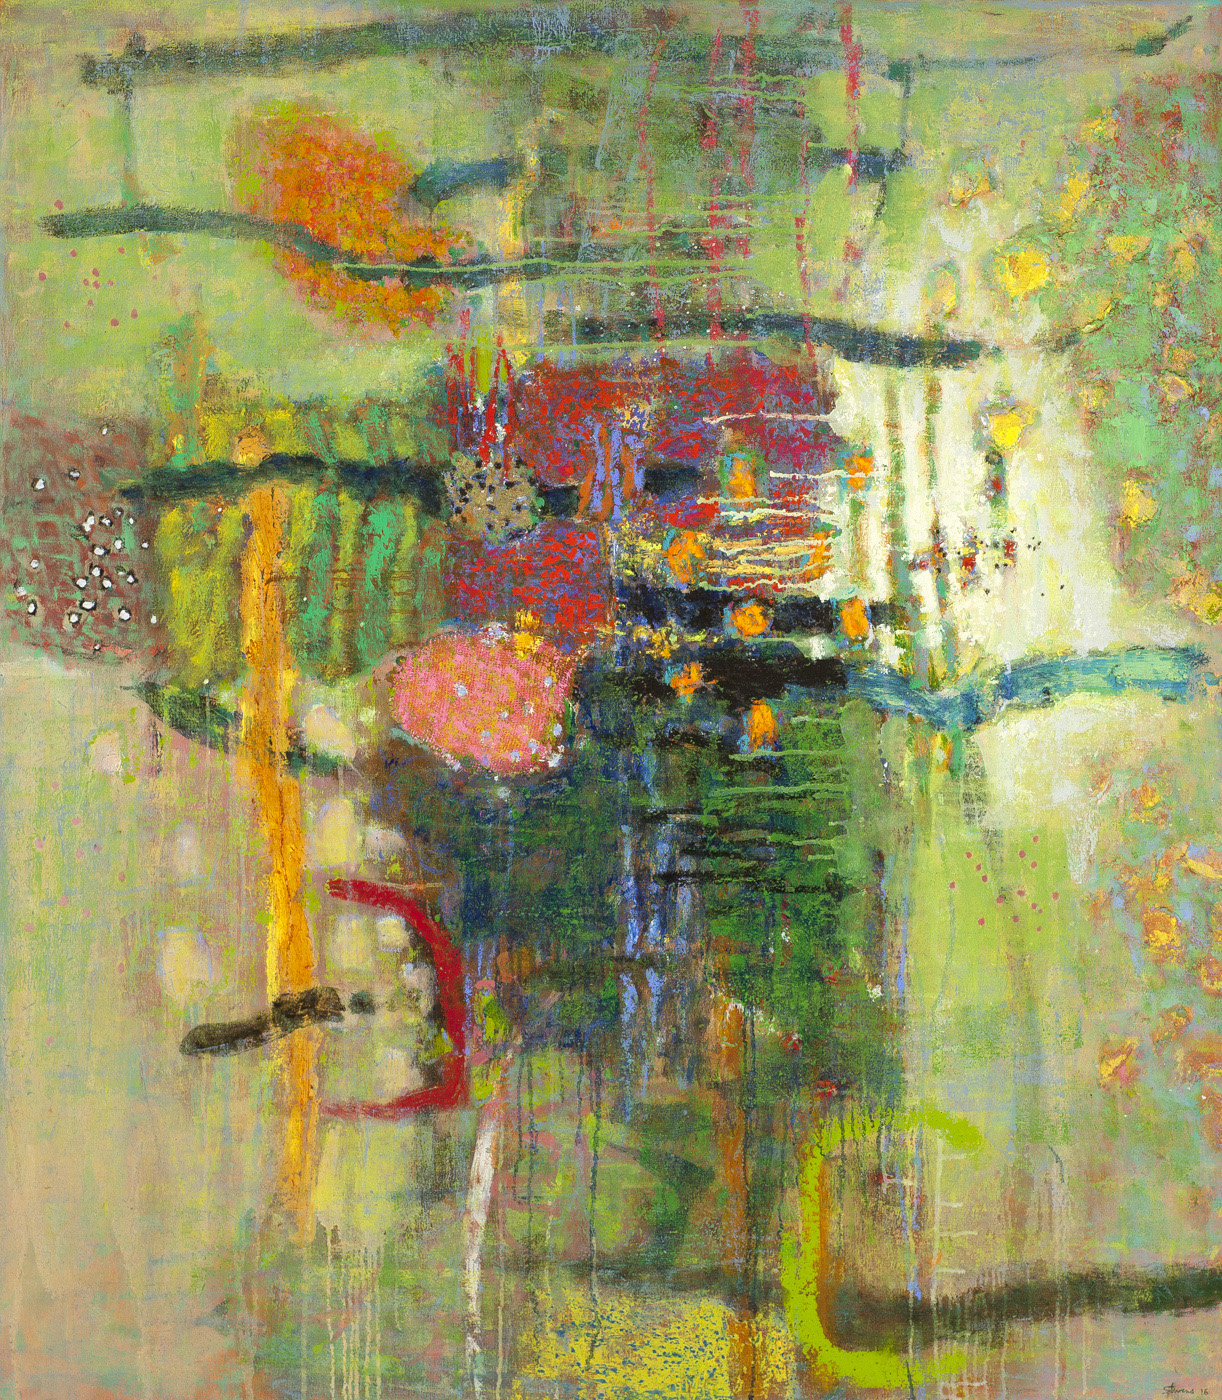 Quiet Vision   | oil on canvas | 48 x 42"